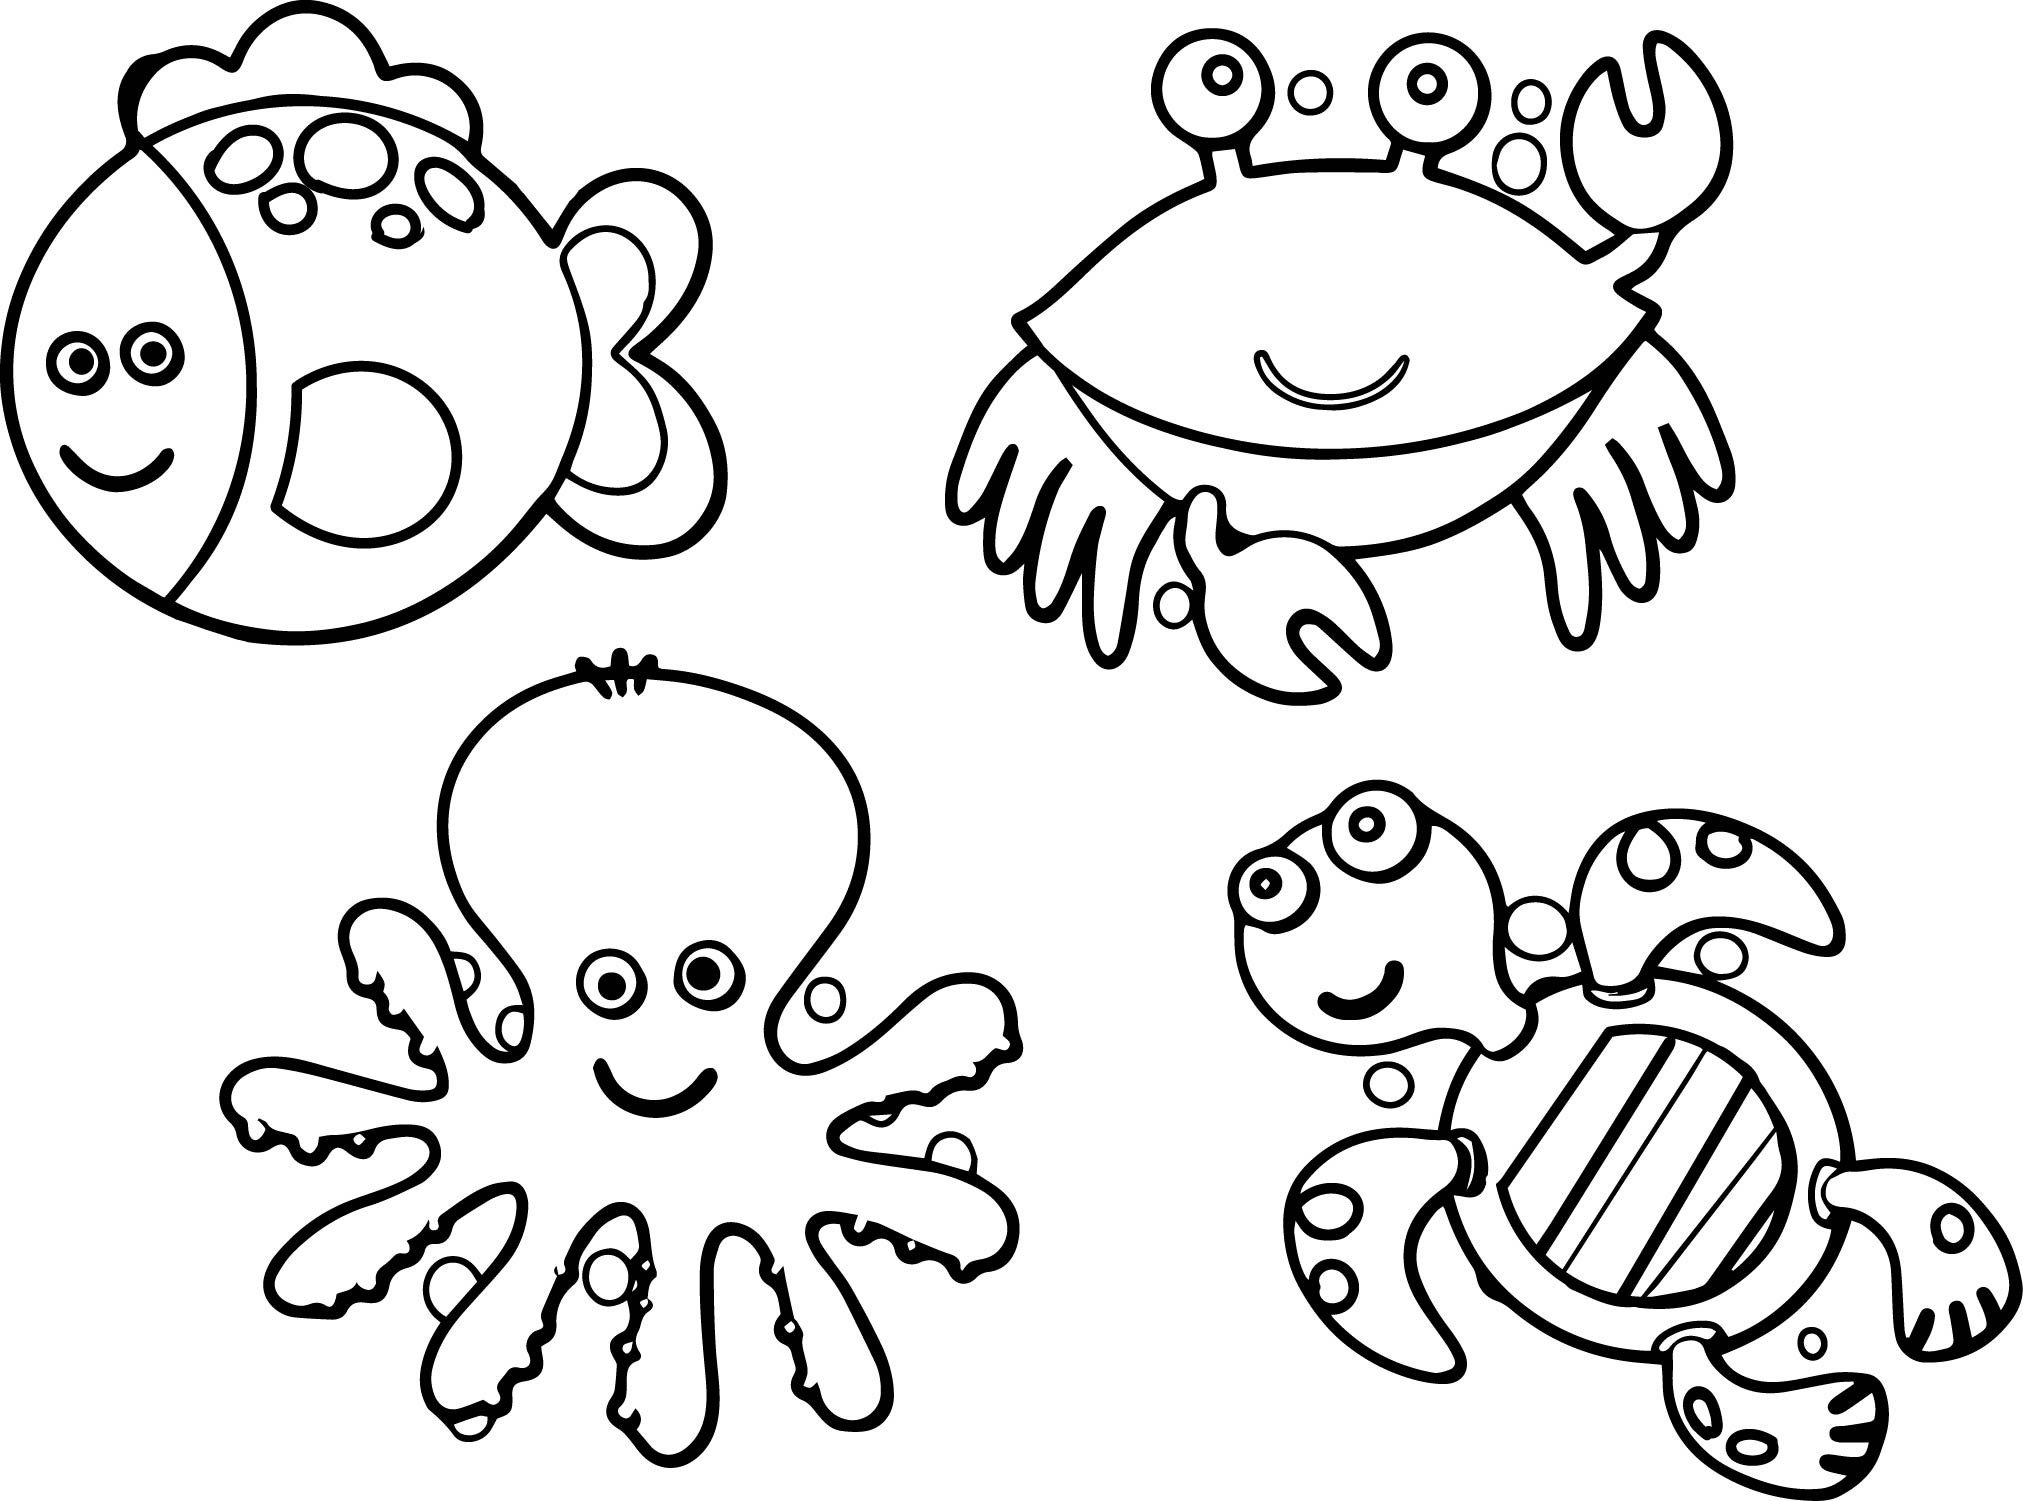 Sea life animals coloring page for Sea creature coloring page